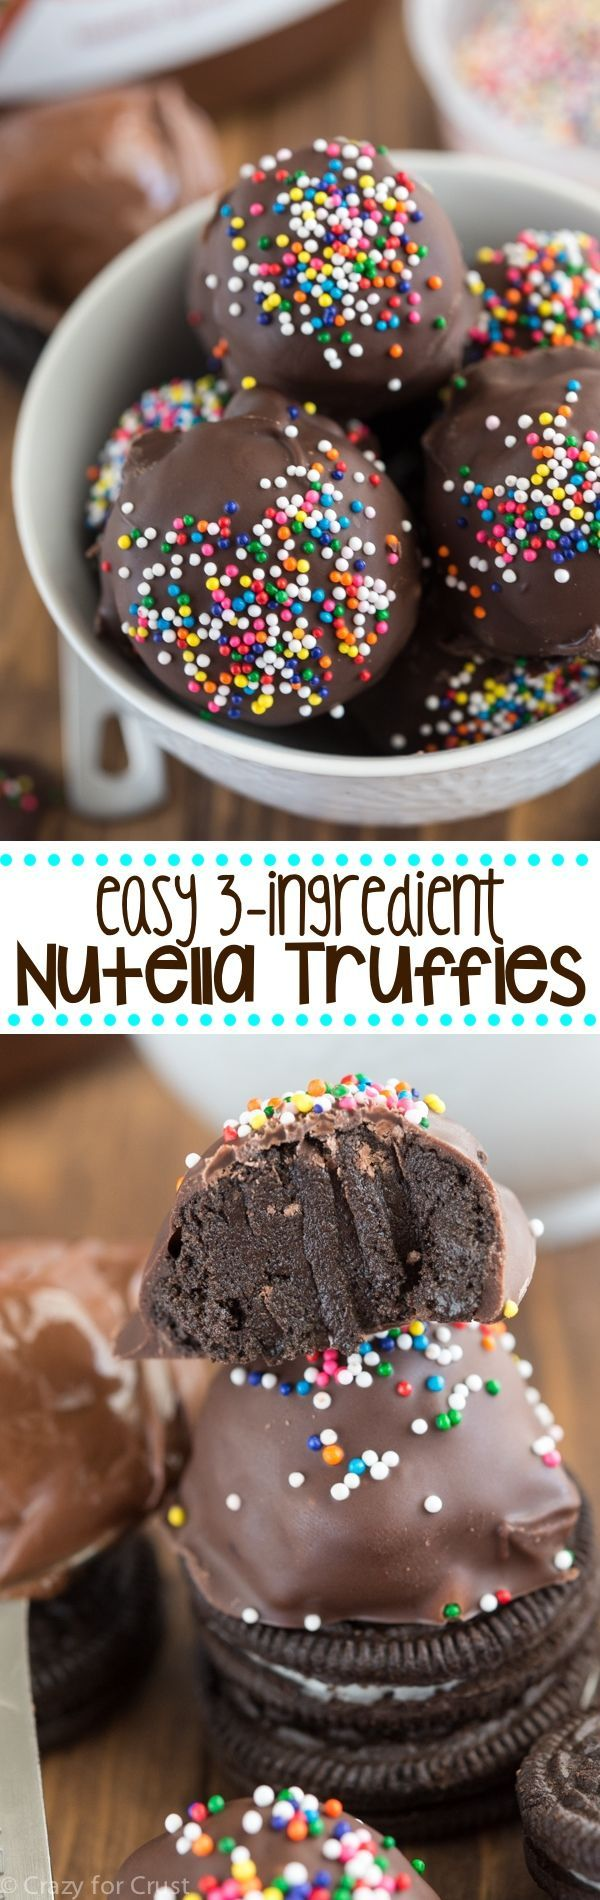 With just three ingredients, Nutella, chocolate cookies, and melted chocolate, make these delicious homemade truffles. Cover in sprinkles for a dash of color.